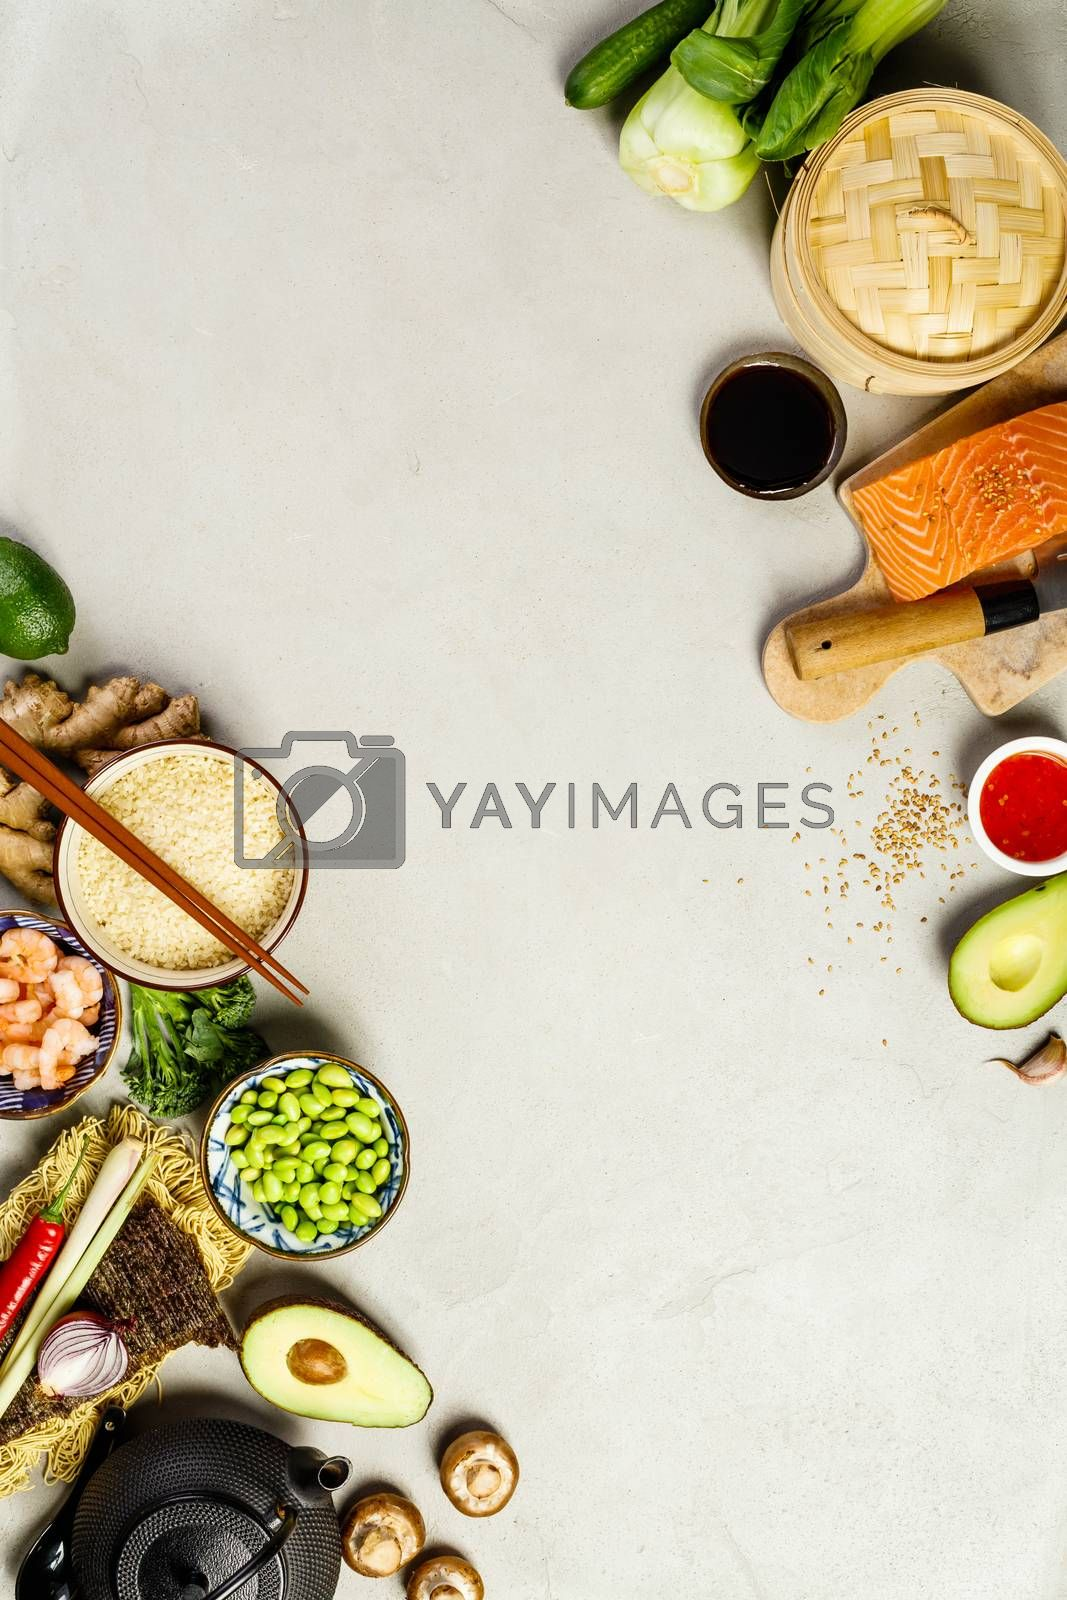 Asian cuisine ingredients on concrete background, top view. Vegetables, spices, shrimp, noodles, rice, sauces for cooking vietnamese, thai or chinese food. Clean eating food concept